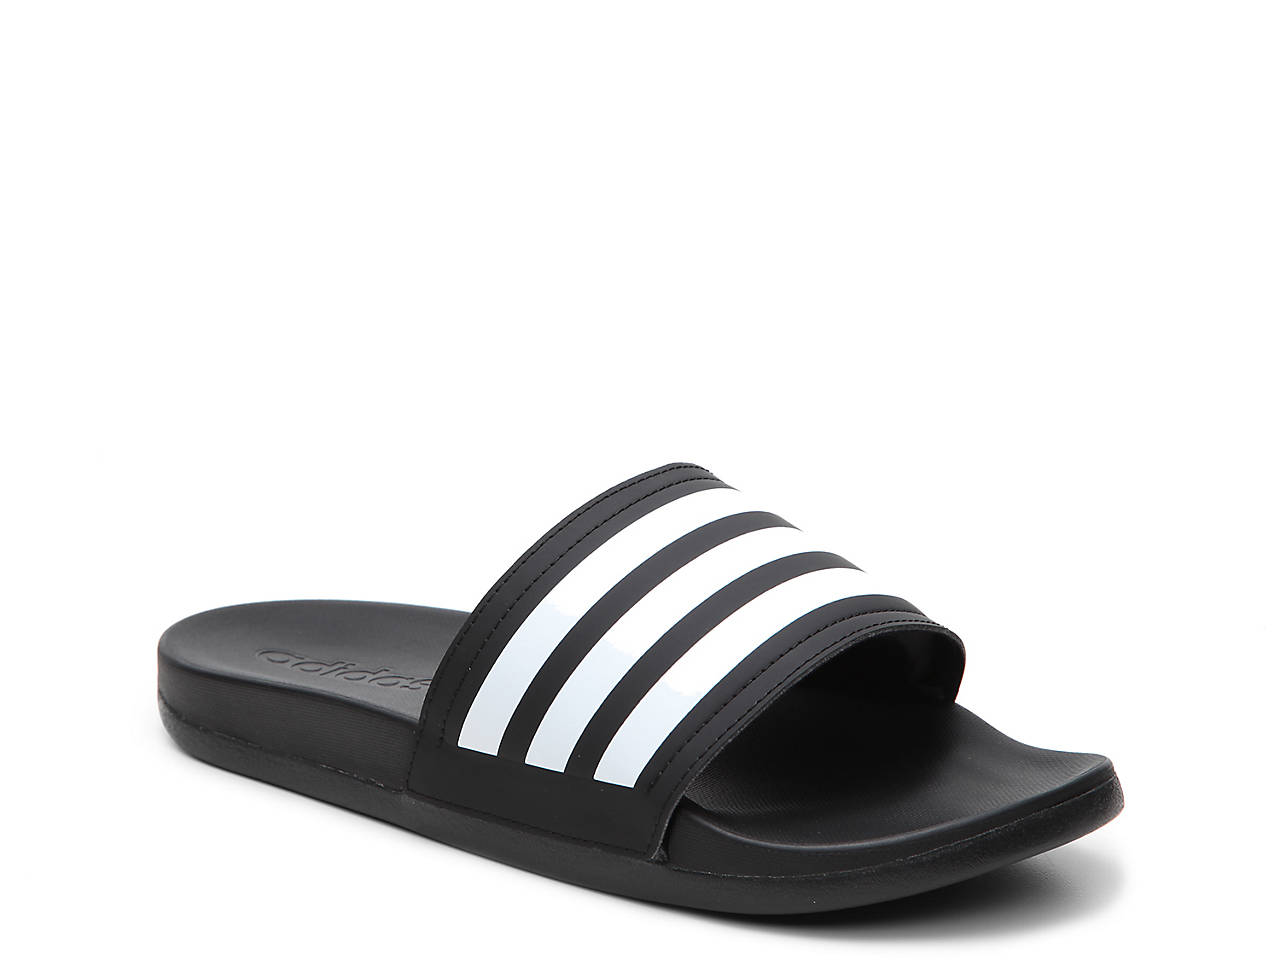 deb7c363d186 adidas Adilette Cloudfoam Ultra Stripes Slide Sandal - Women s ...